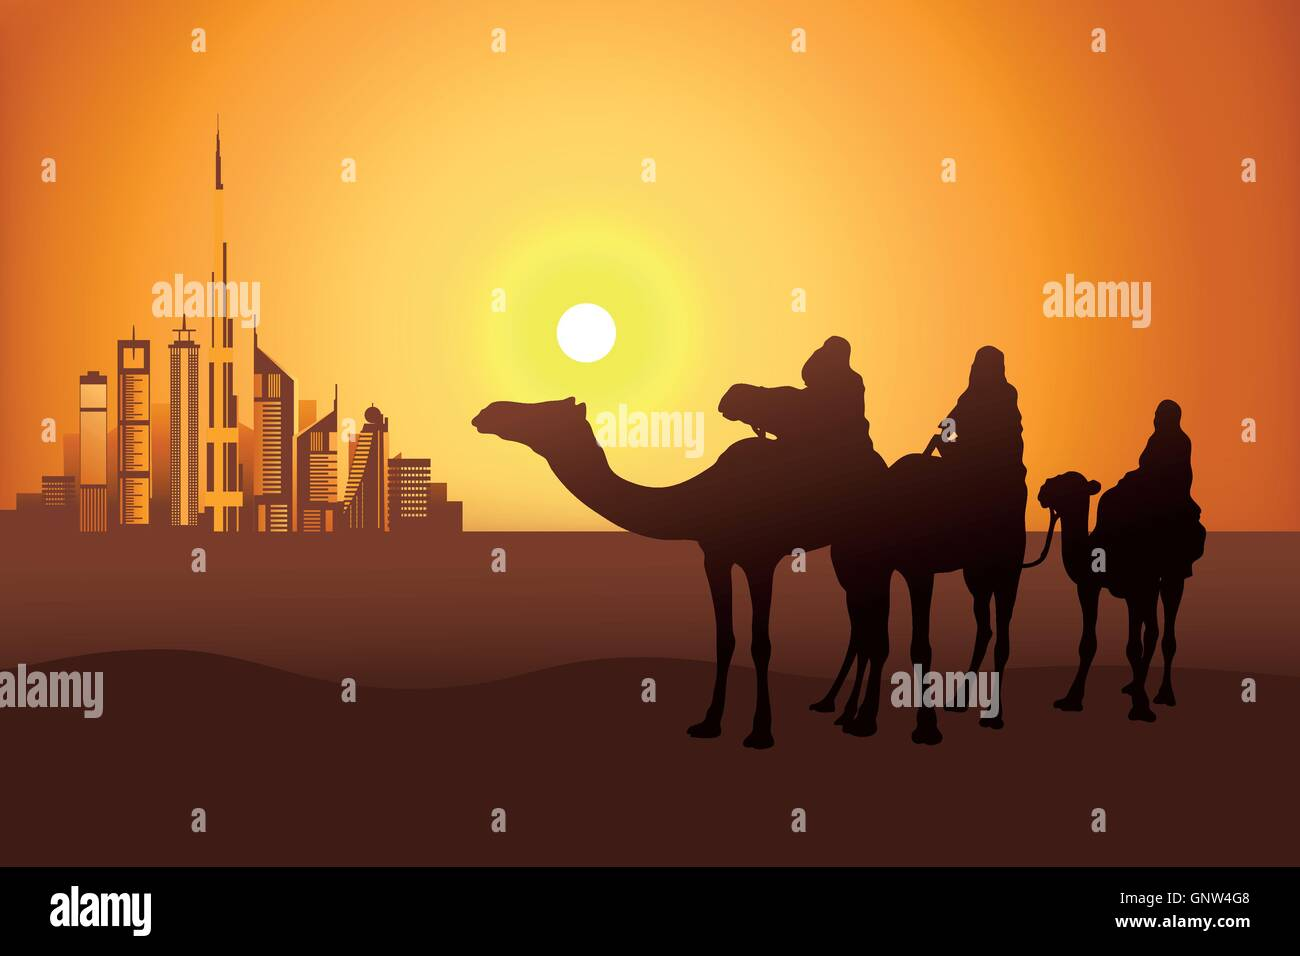 Three camel riders at the sunset in the desert on the Dubai city background vector illustration - Stock Vector